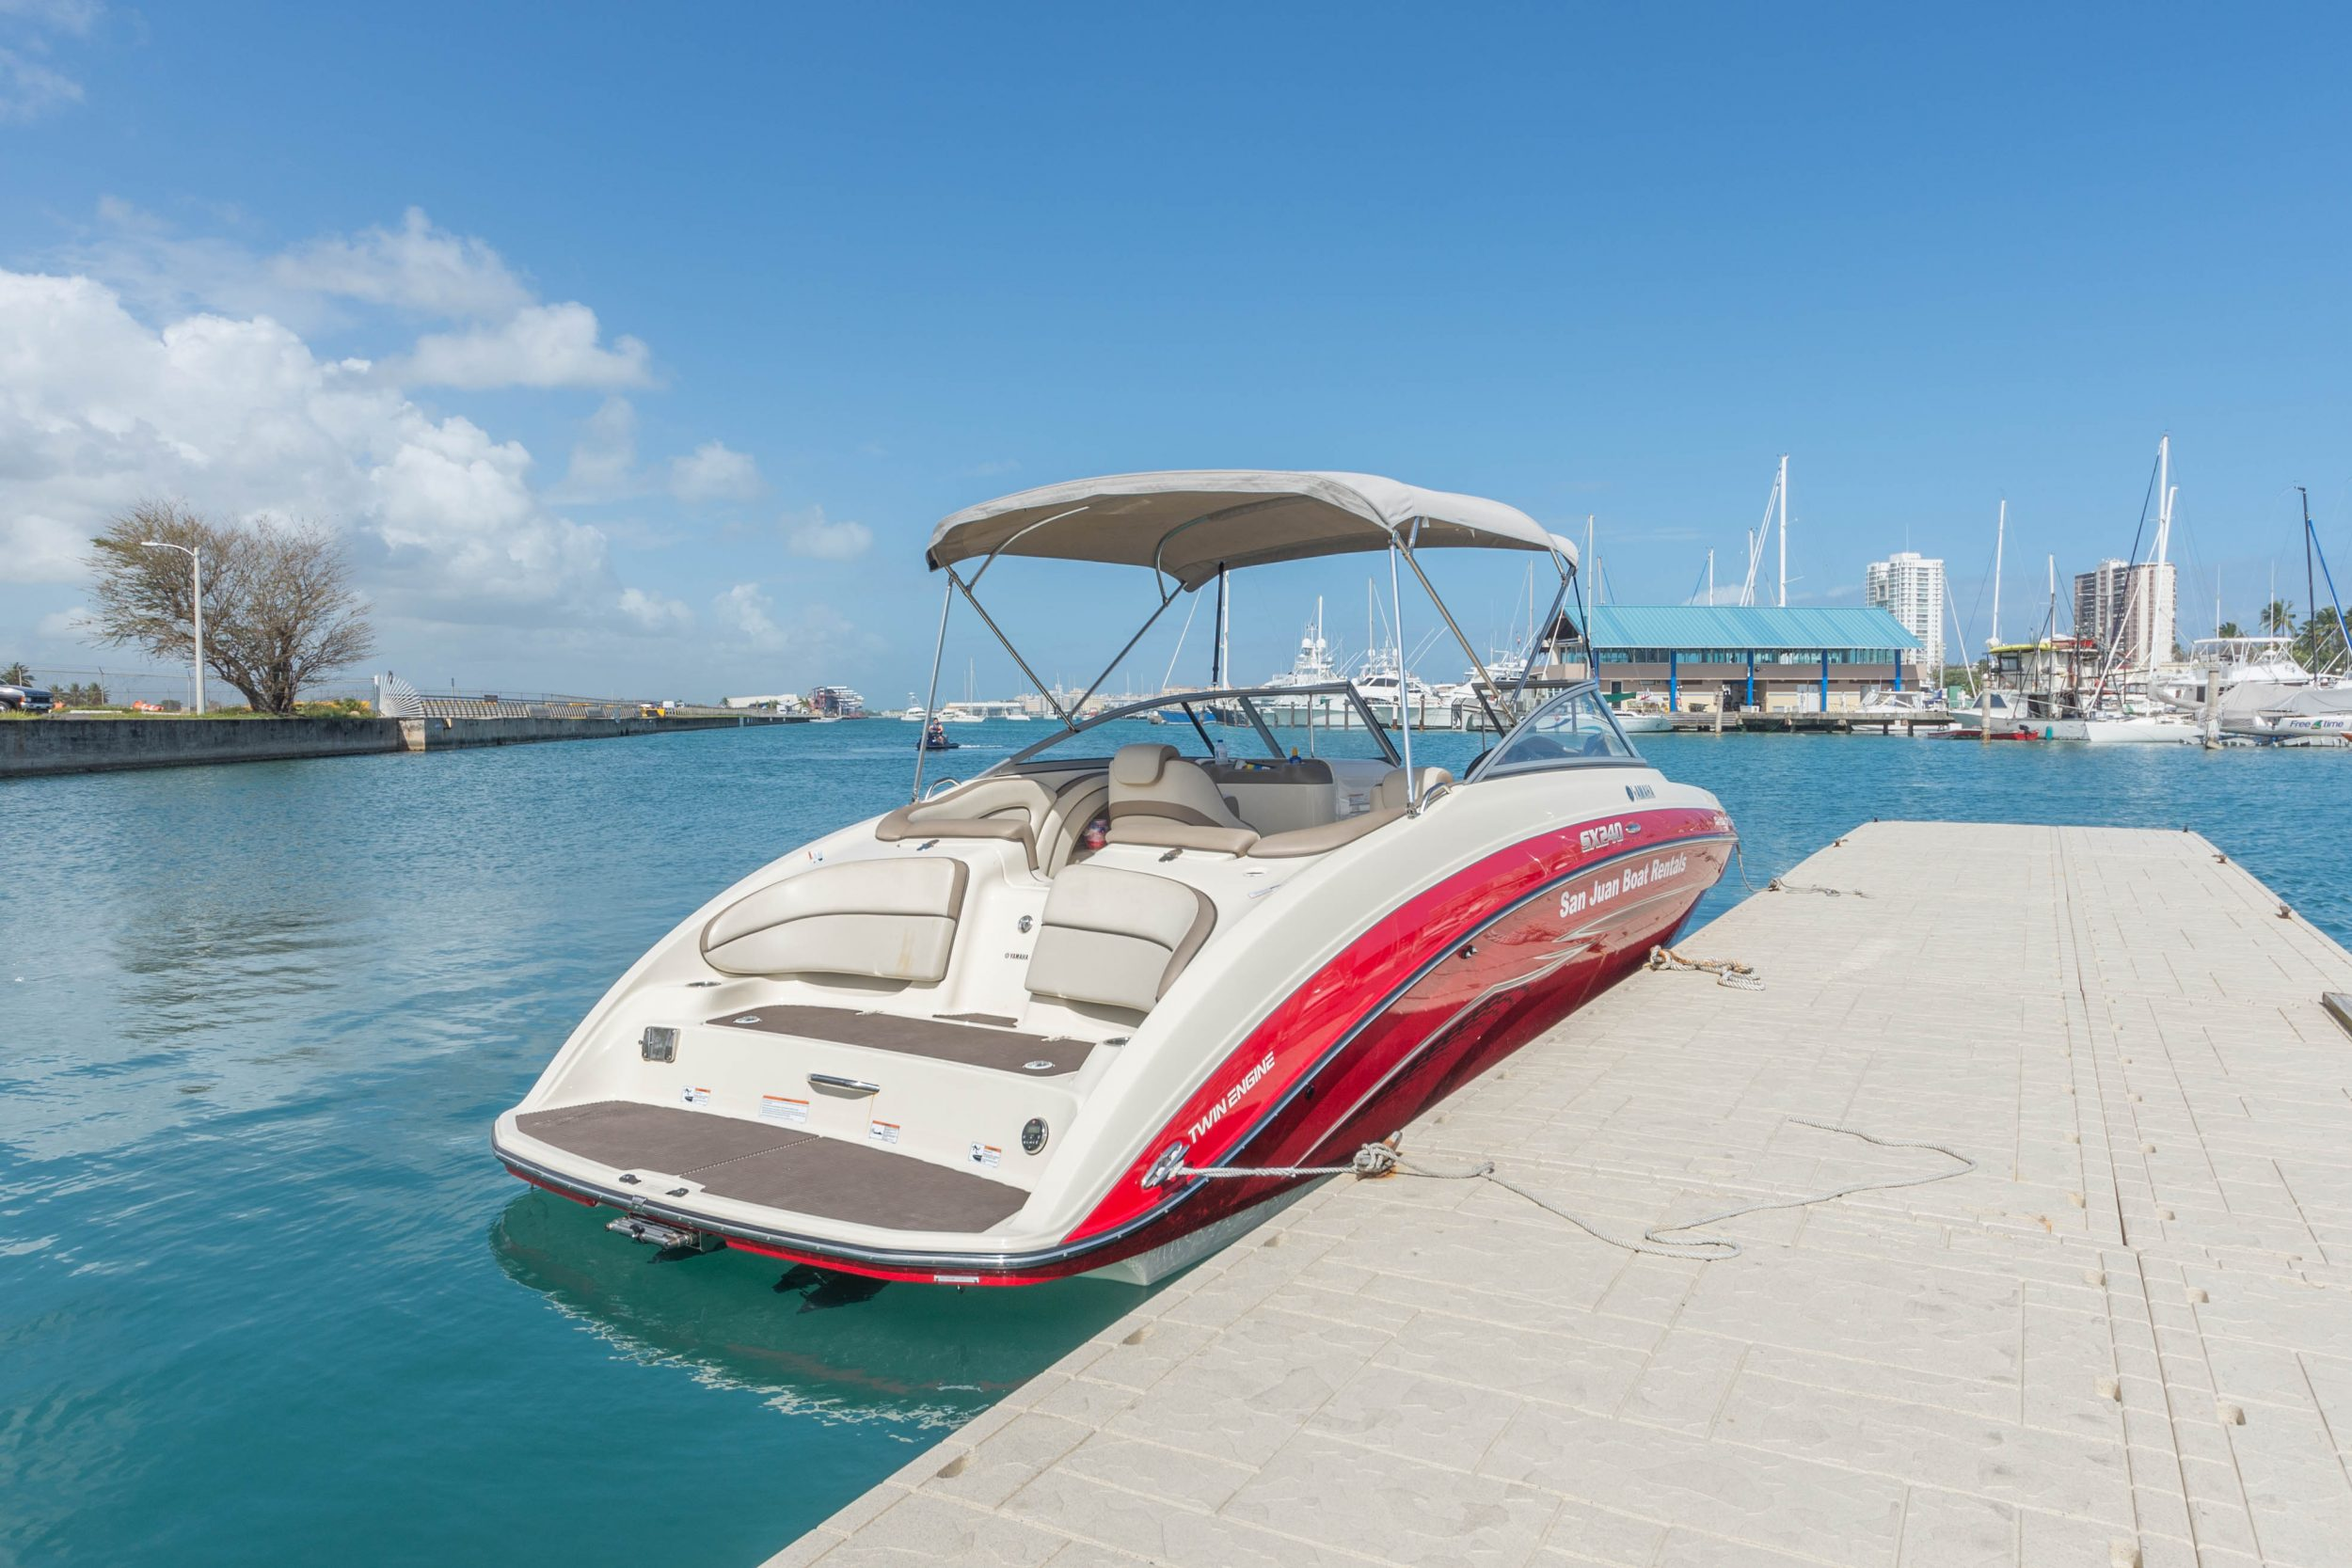 Picture of Stern of Yamaha Jetboat Hot Tamale.